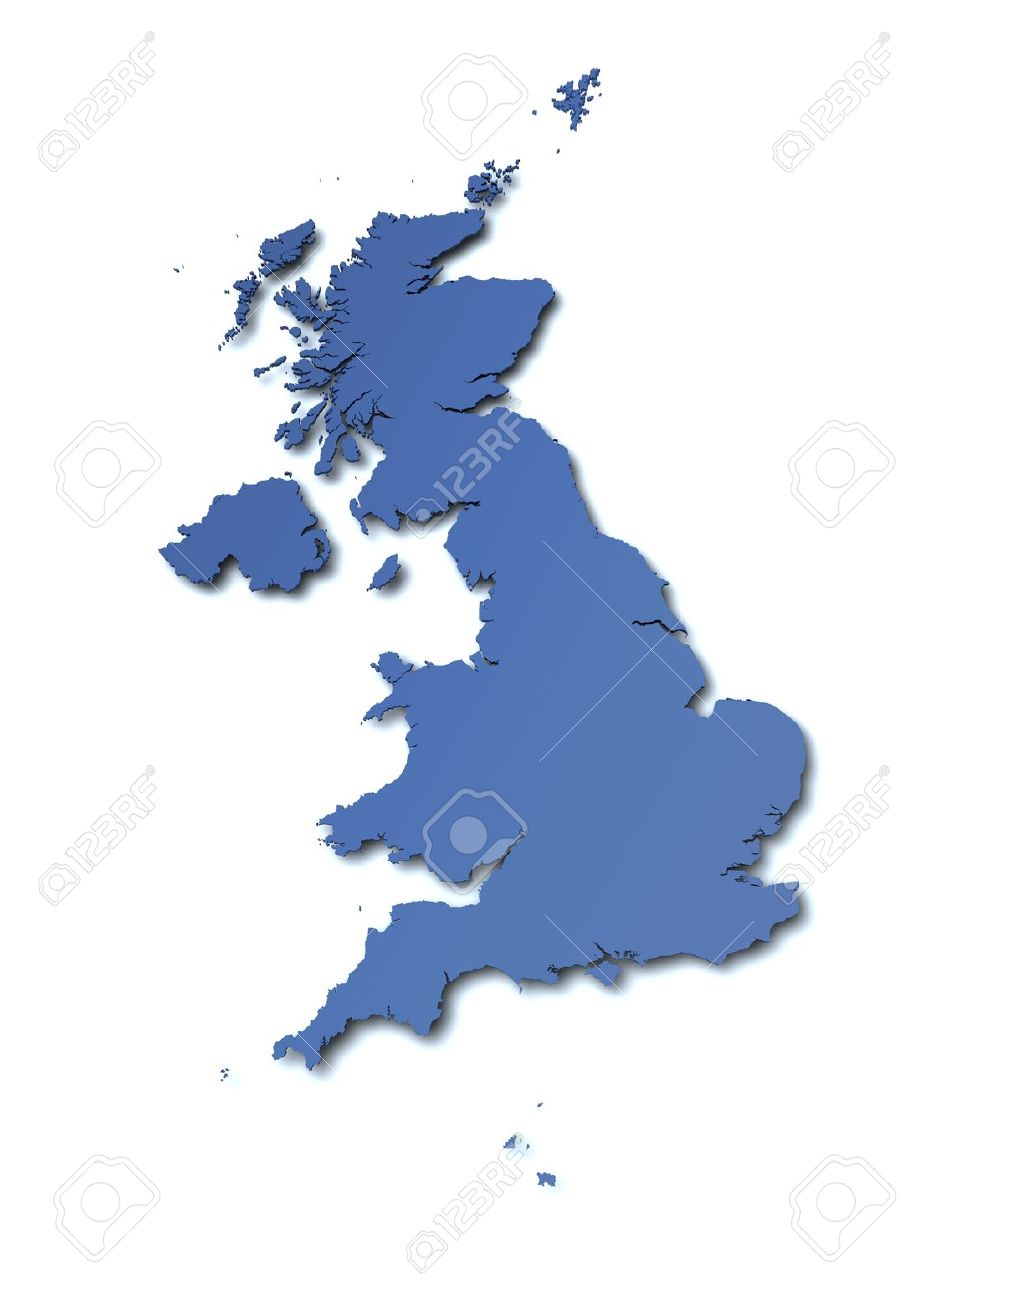 Blank united kingdom clipart map png freeuse download Blank united kingdom clipart map - ClipartFox png freeuse download